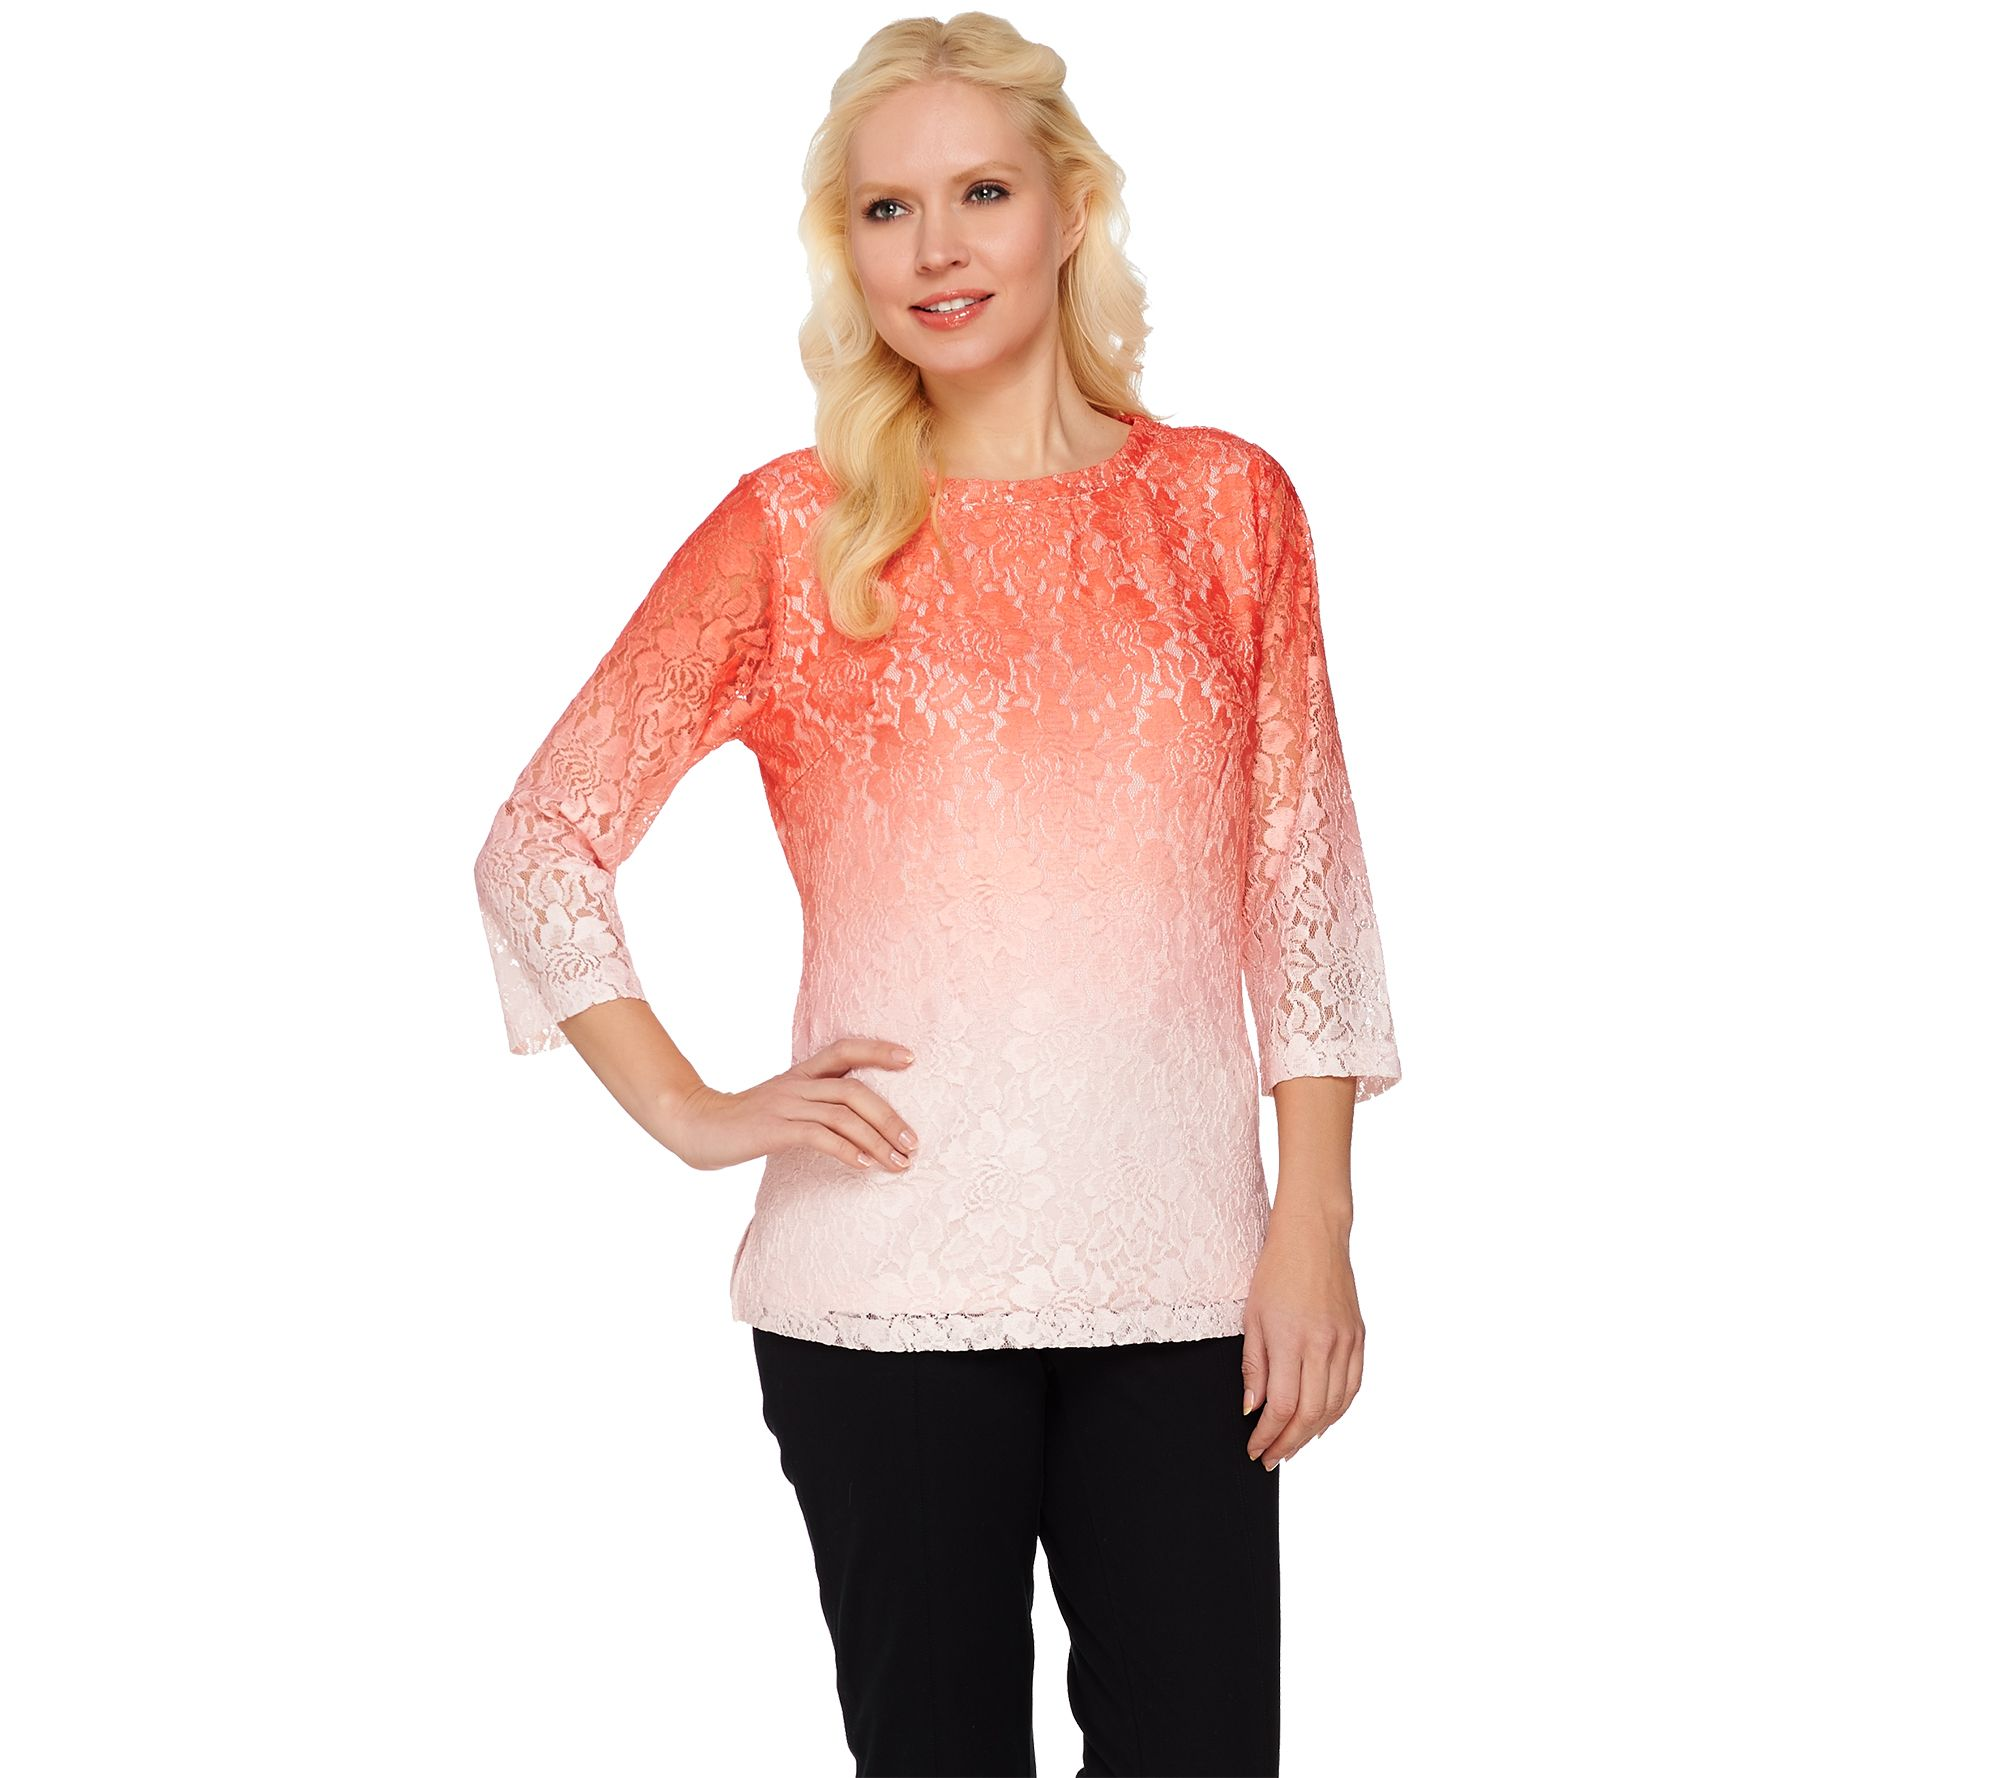 Isaac Mizrahi Live Printed Ombre Lace 3 4 Sleeve Top